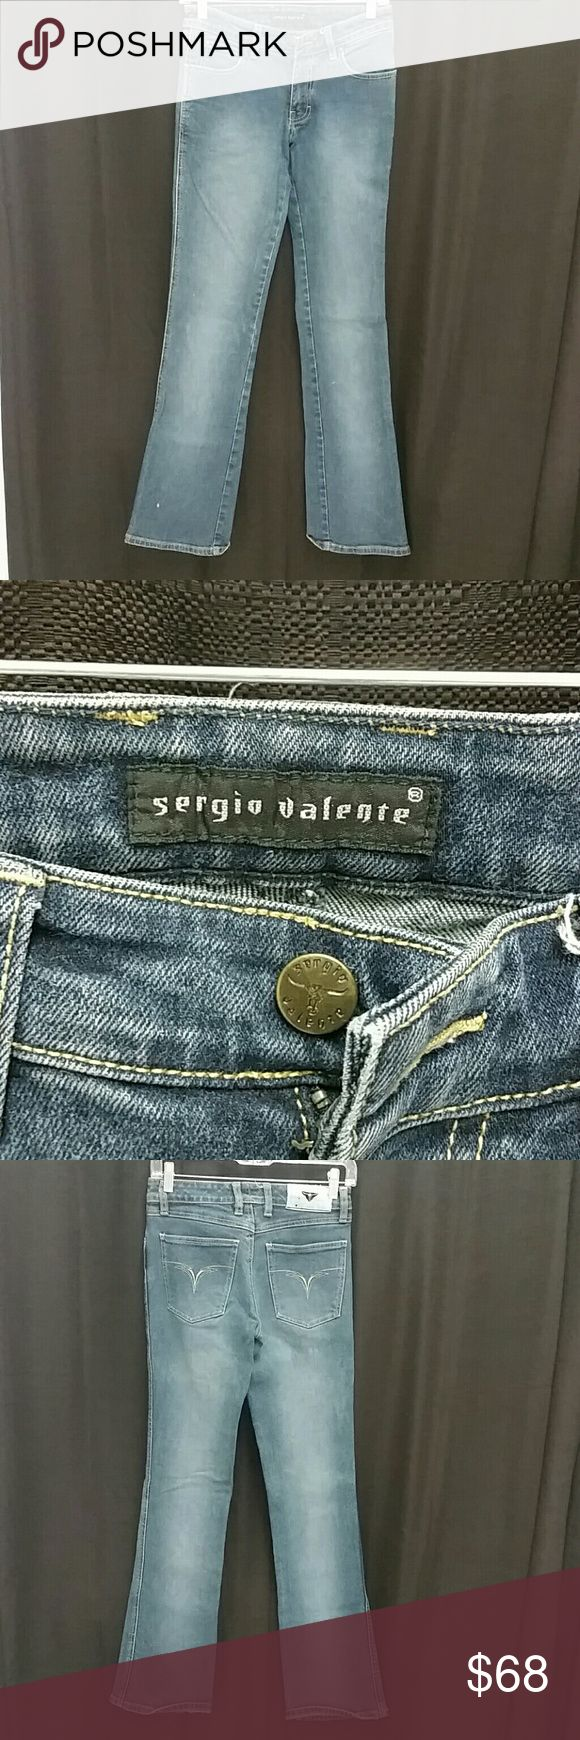 Sergio Valente Boot cut denim jeans. Sergio Valente Boot cut denim jeans. Looks sexy with stilettos. Can be dressed up and down. Has a little stretch. Comes from a smoke free, pet free, clean home. The back tag is worn but name is still there. Sergio Valente Jeans Boot Cut